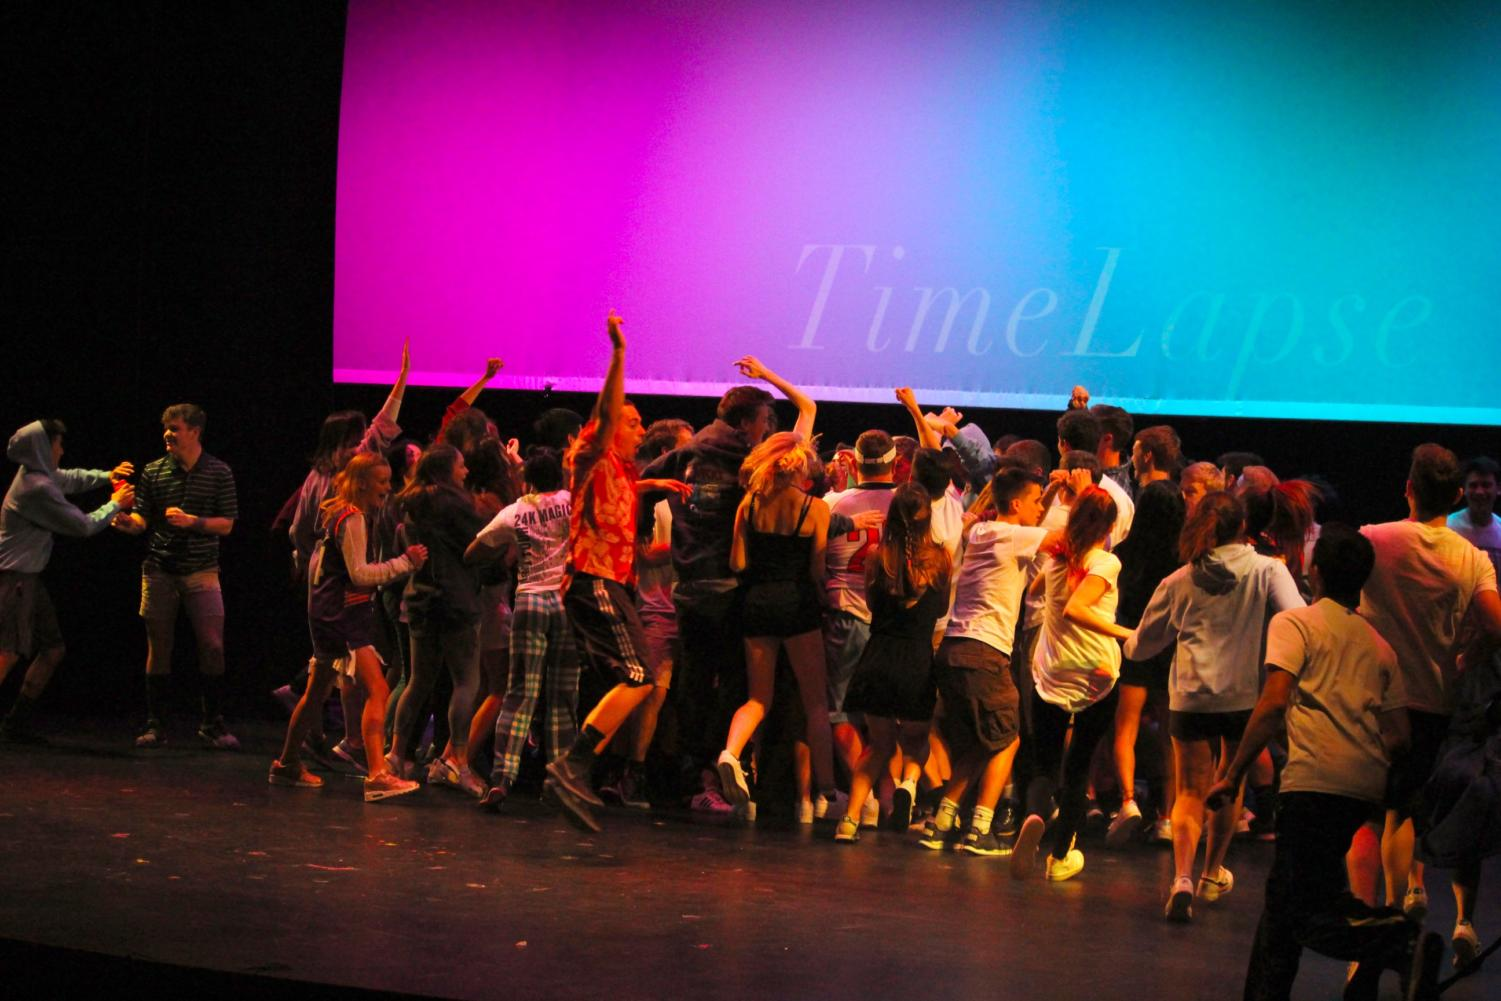 The WHS Class of 2019 ending their Senior Show last March. This March, the Class of 2020 will take the stage for their own Senior Show.